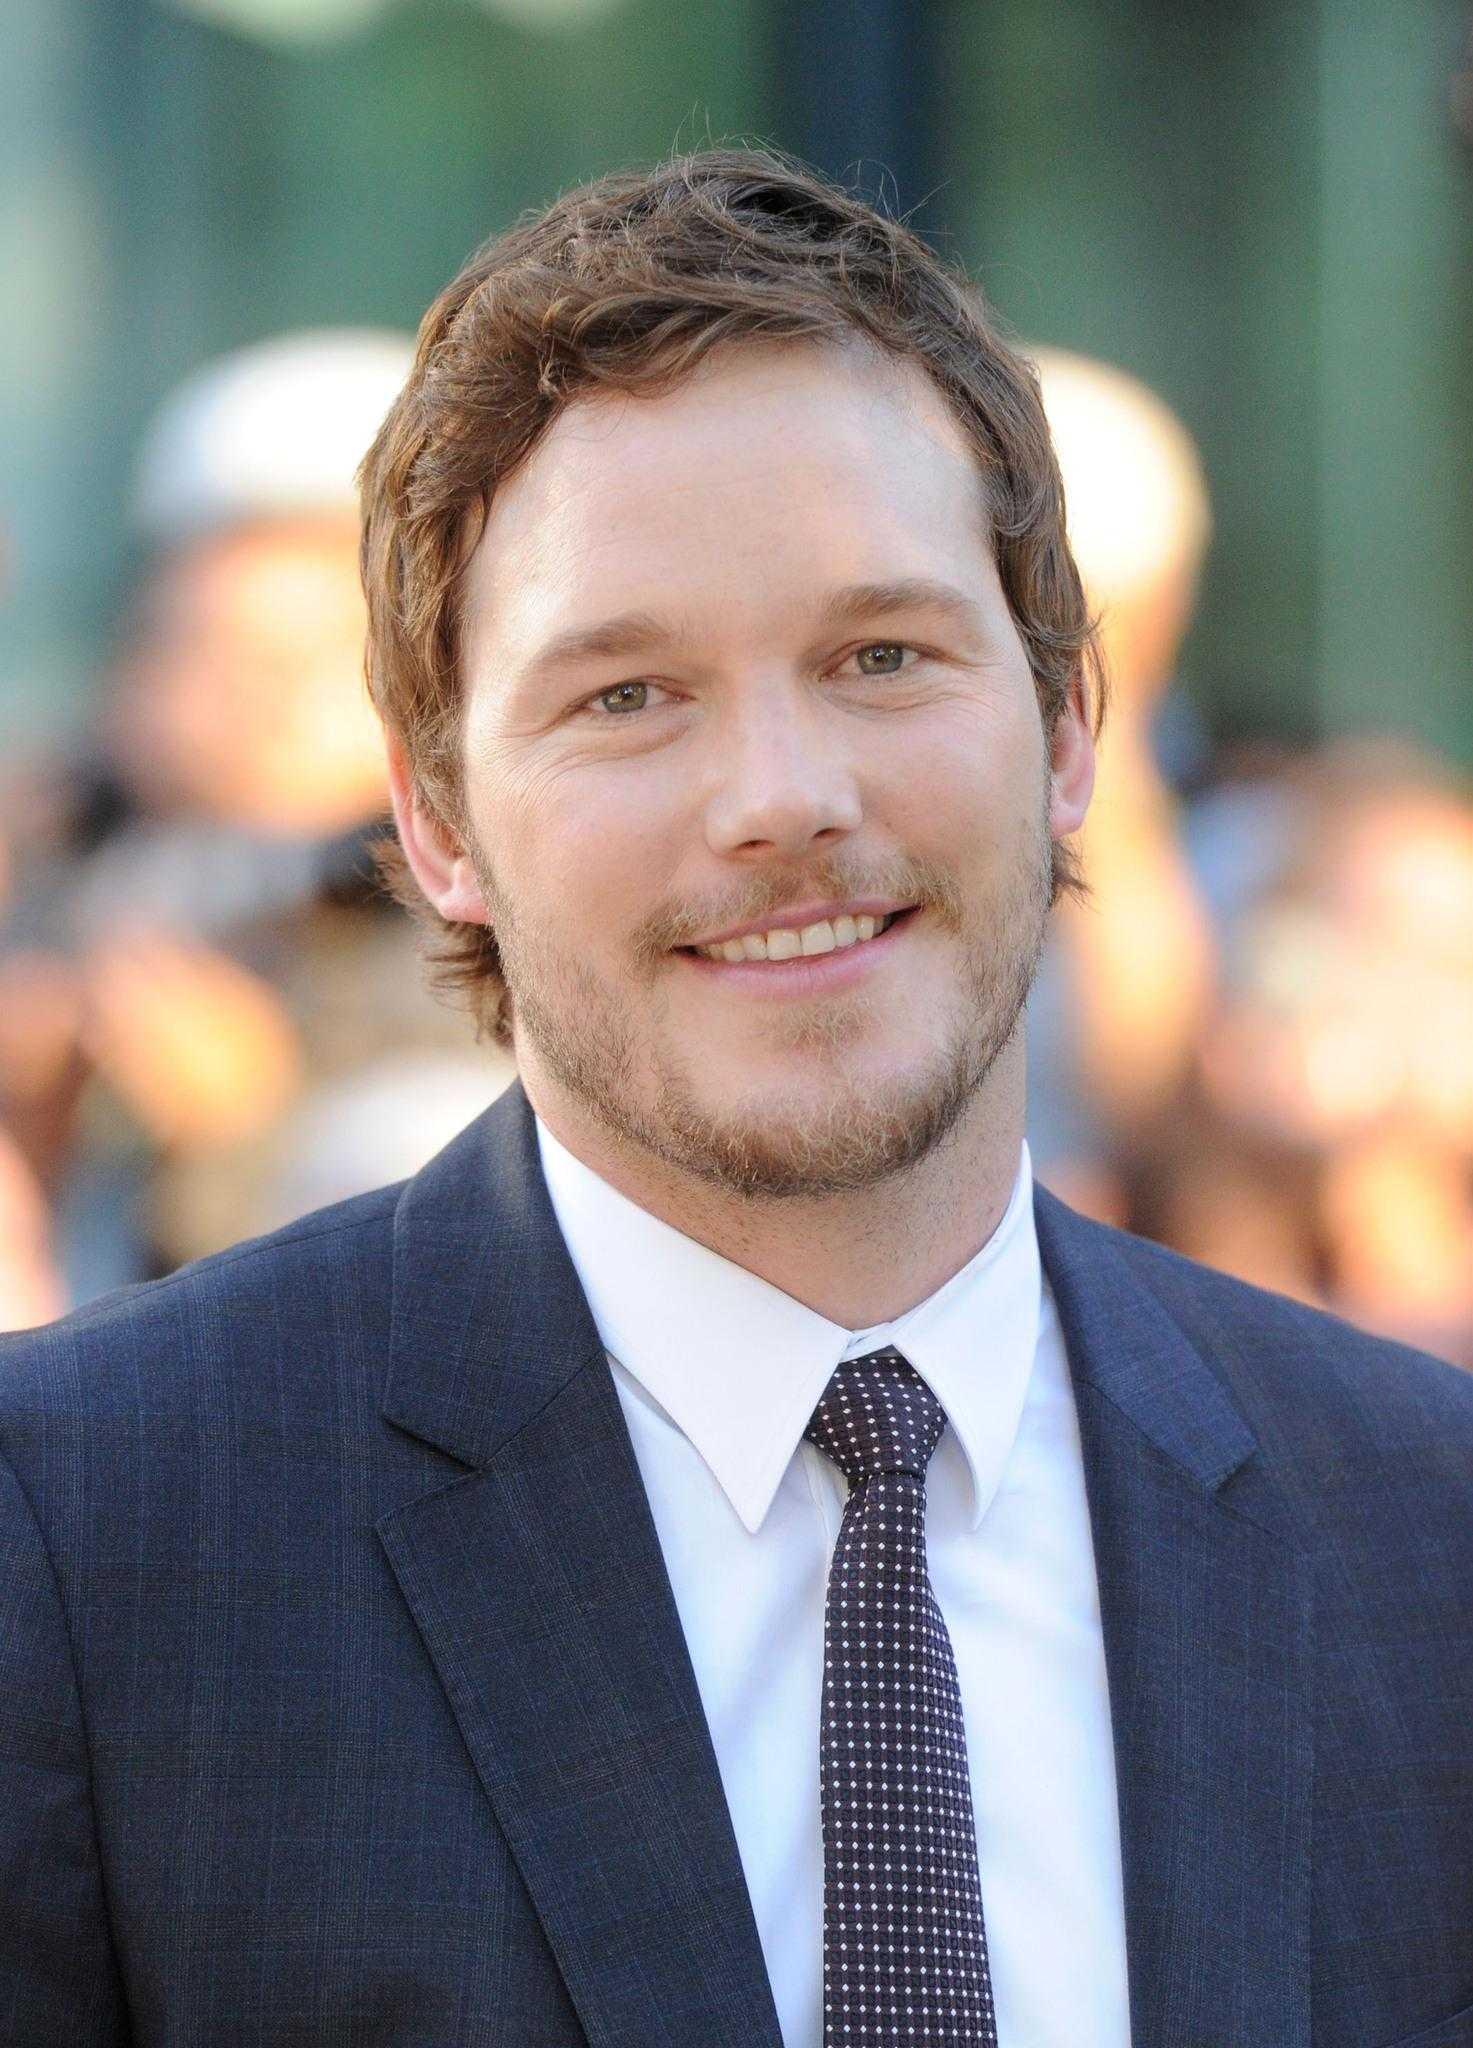 Chris Pratt Surprises Children At L.A. Hospital Dressed As